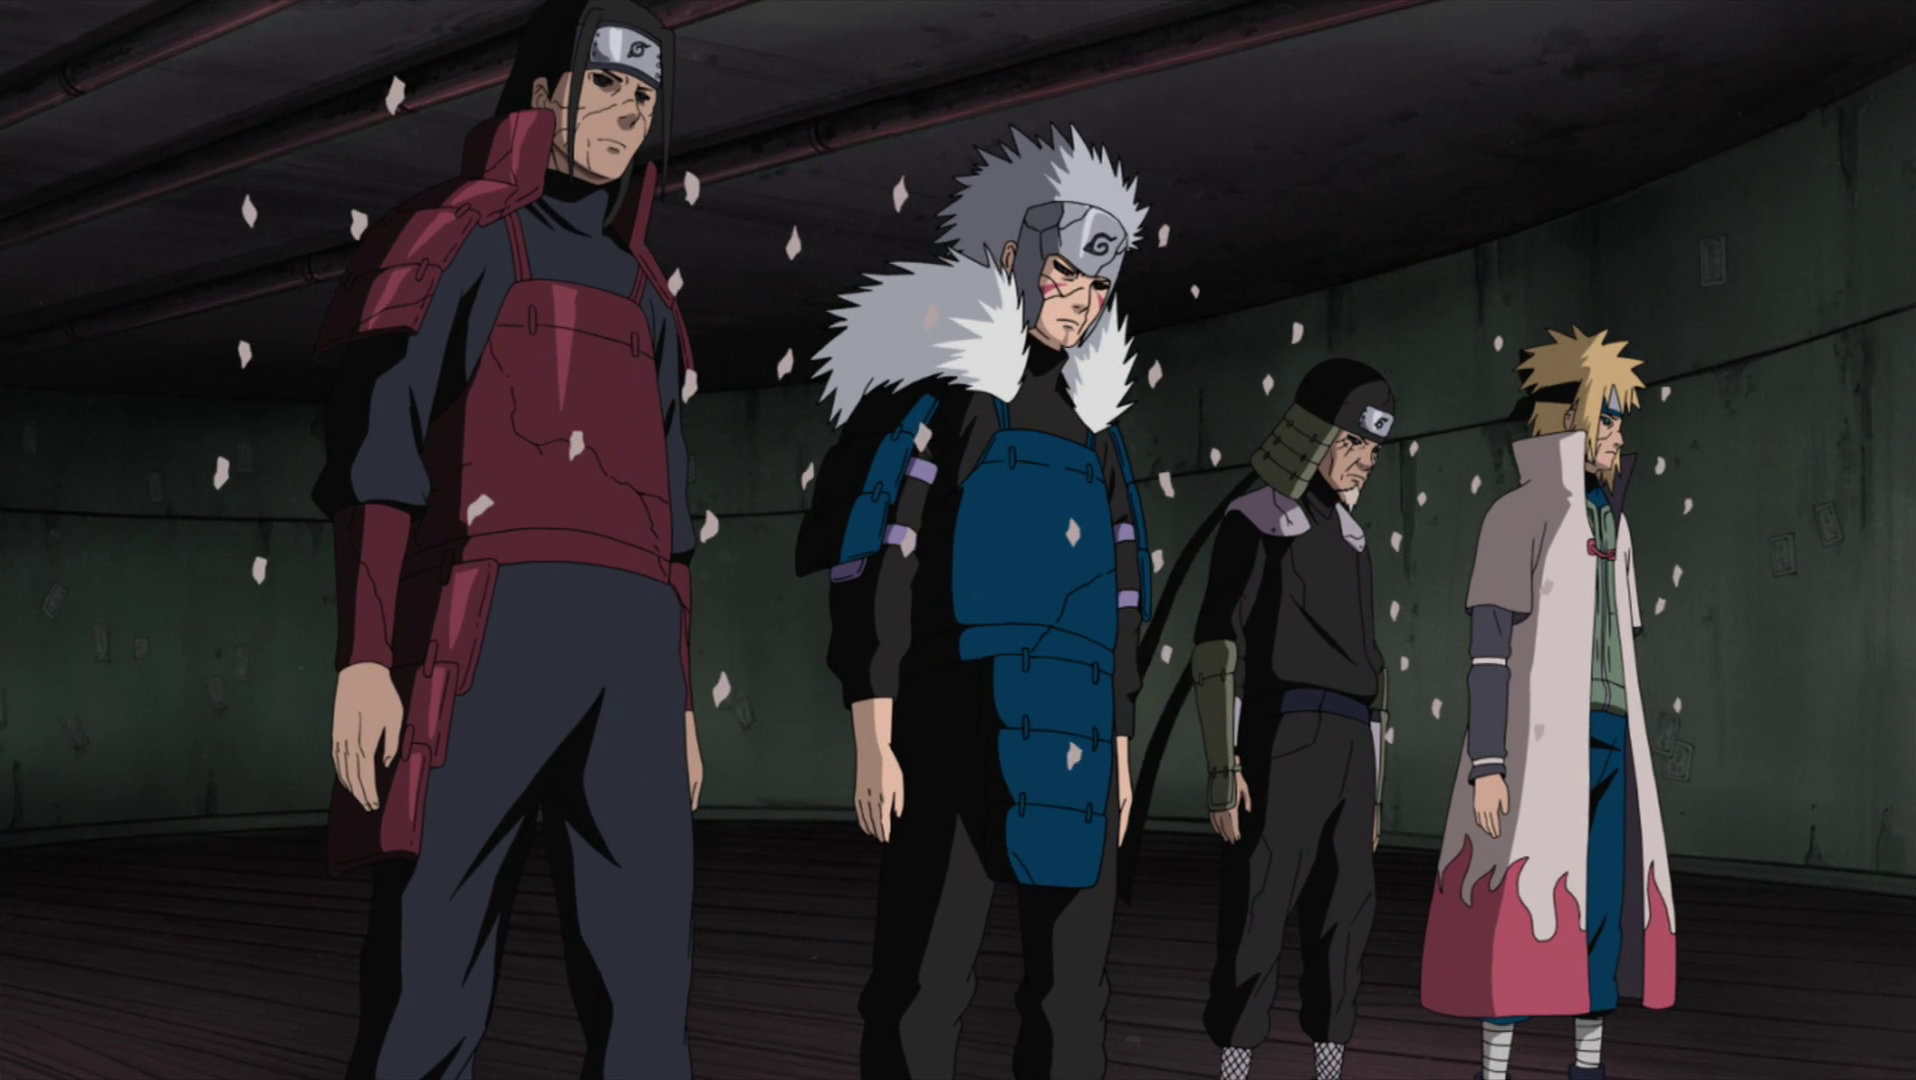 In your opinion, what ruined Naruto? - Quora